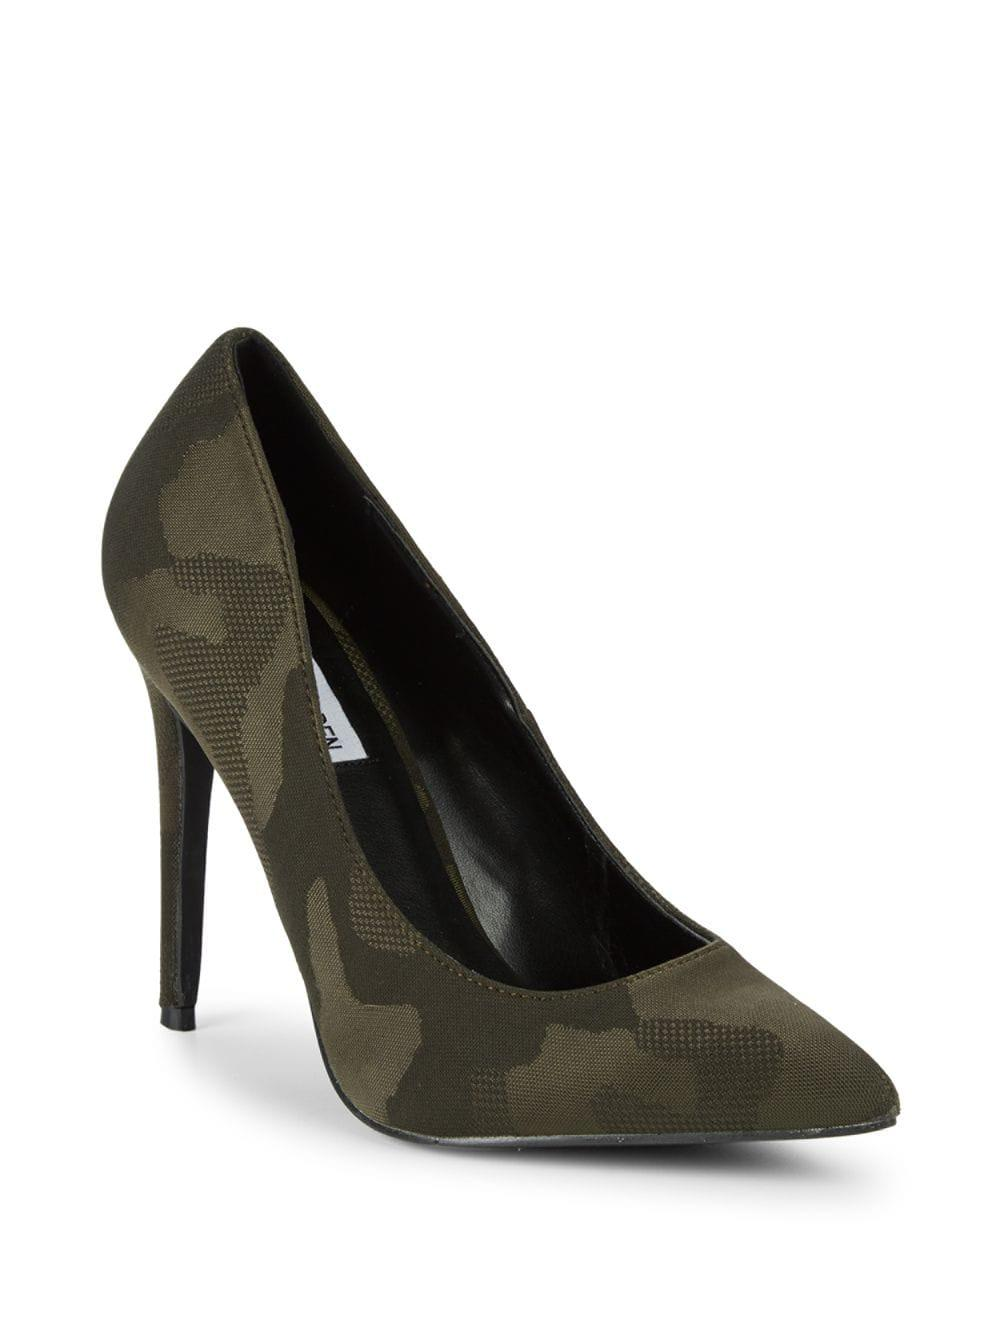 fe176c55023 Steve Madden. Women s Olena Camouflage Point-toe Pumps